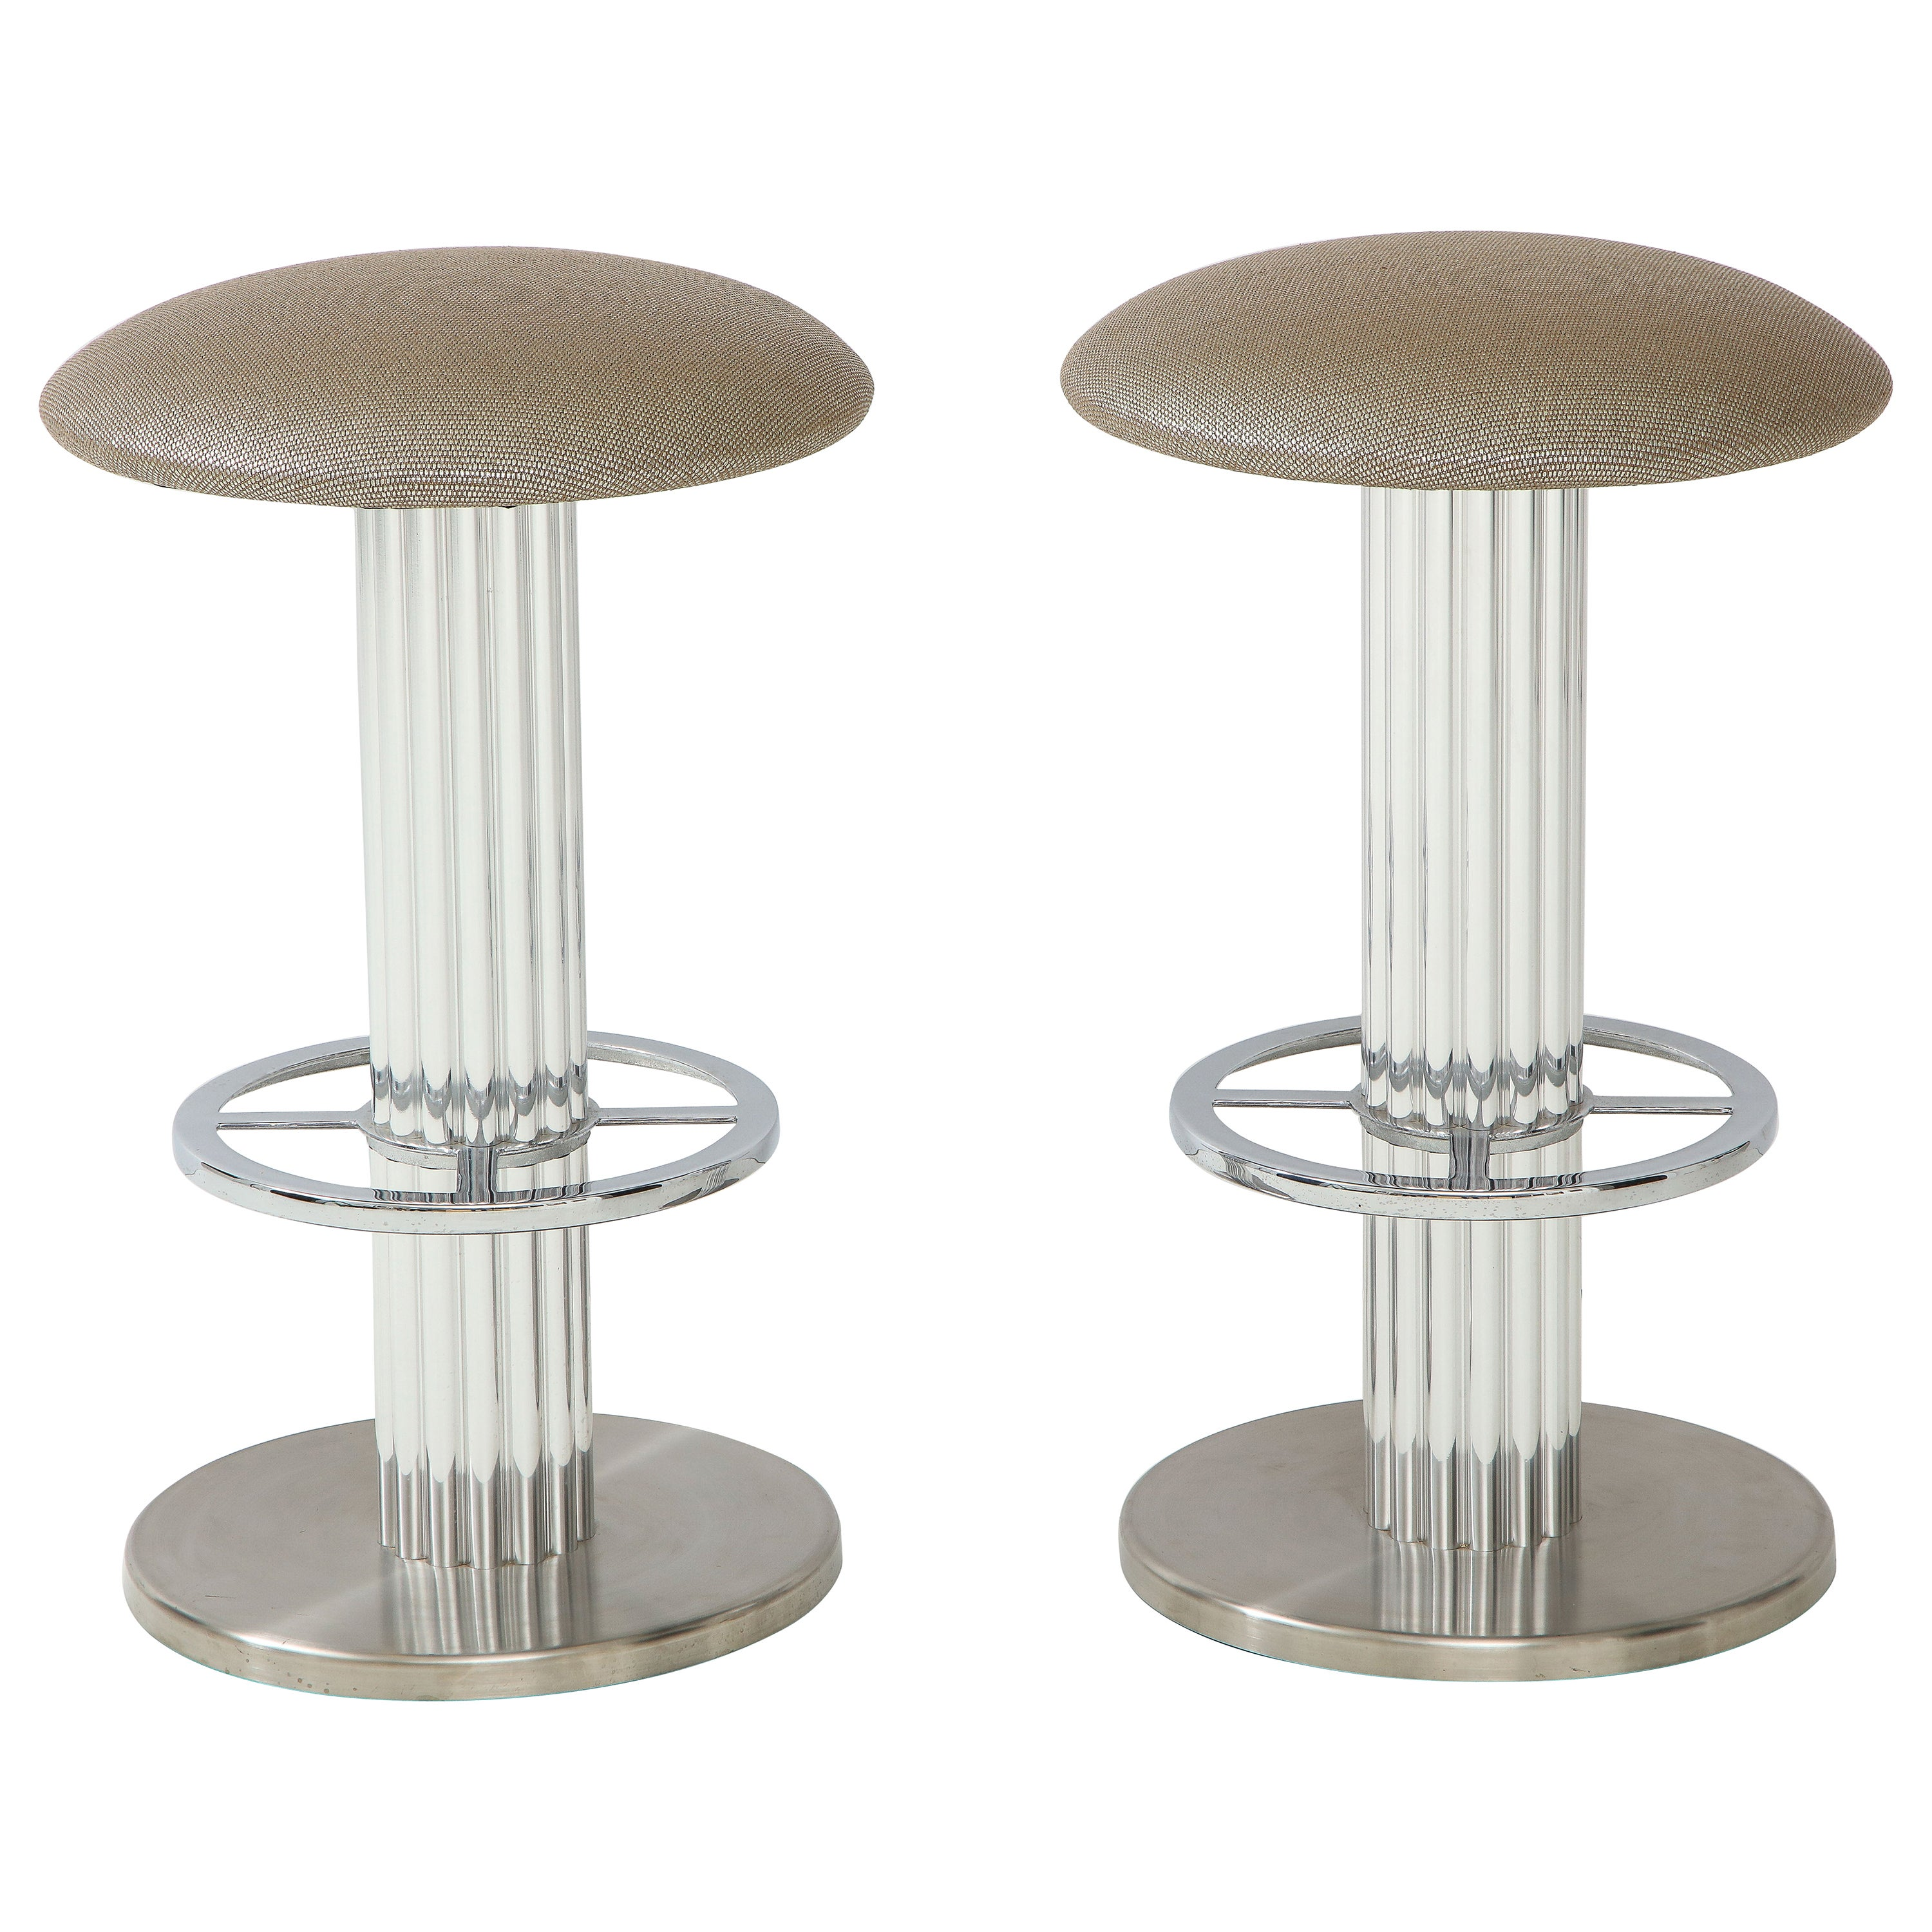 Pair of Designs for Leisure Bar Stools